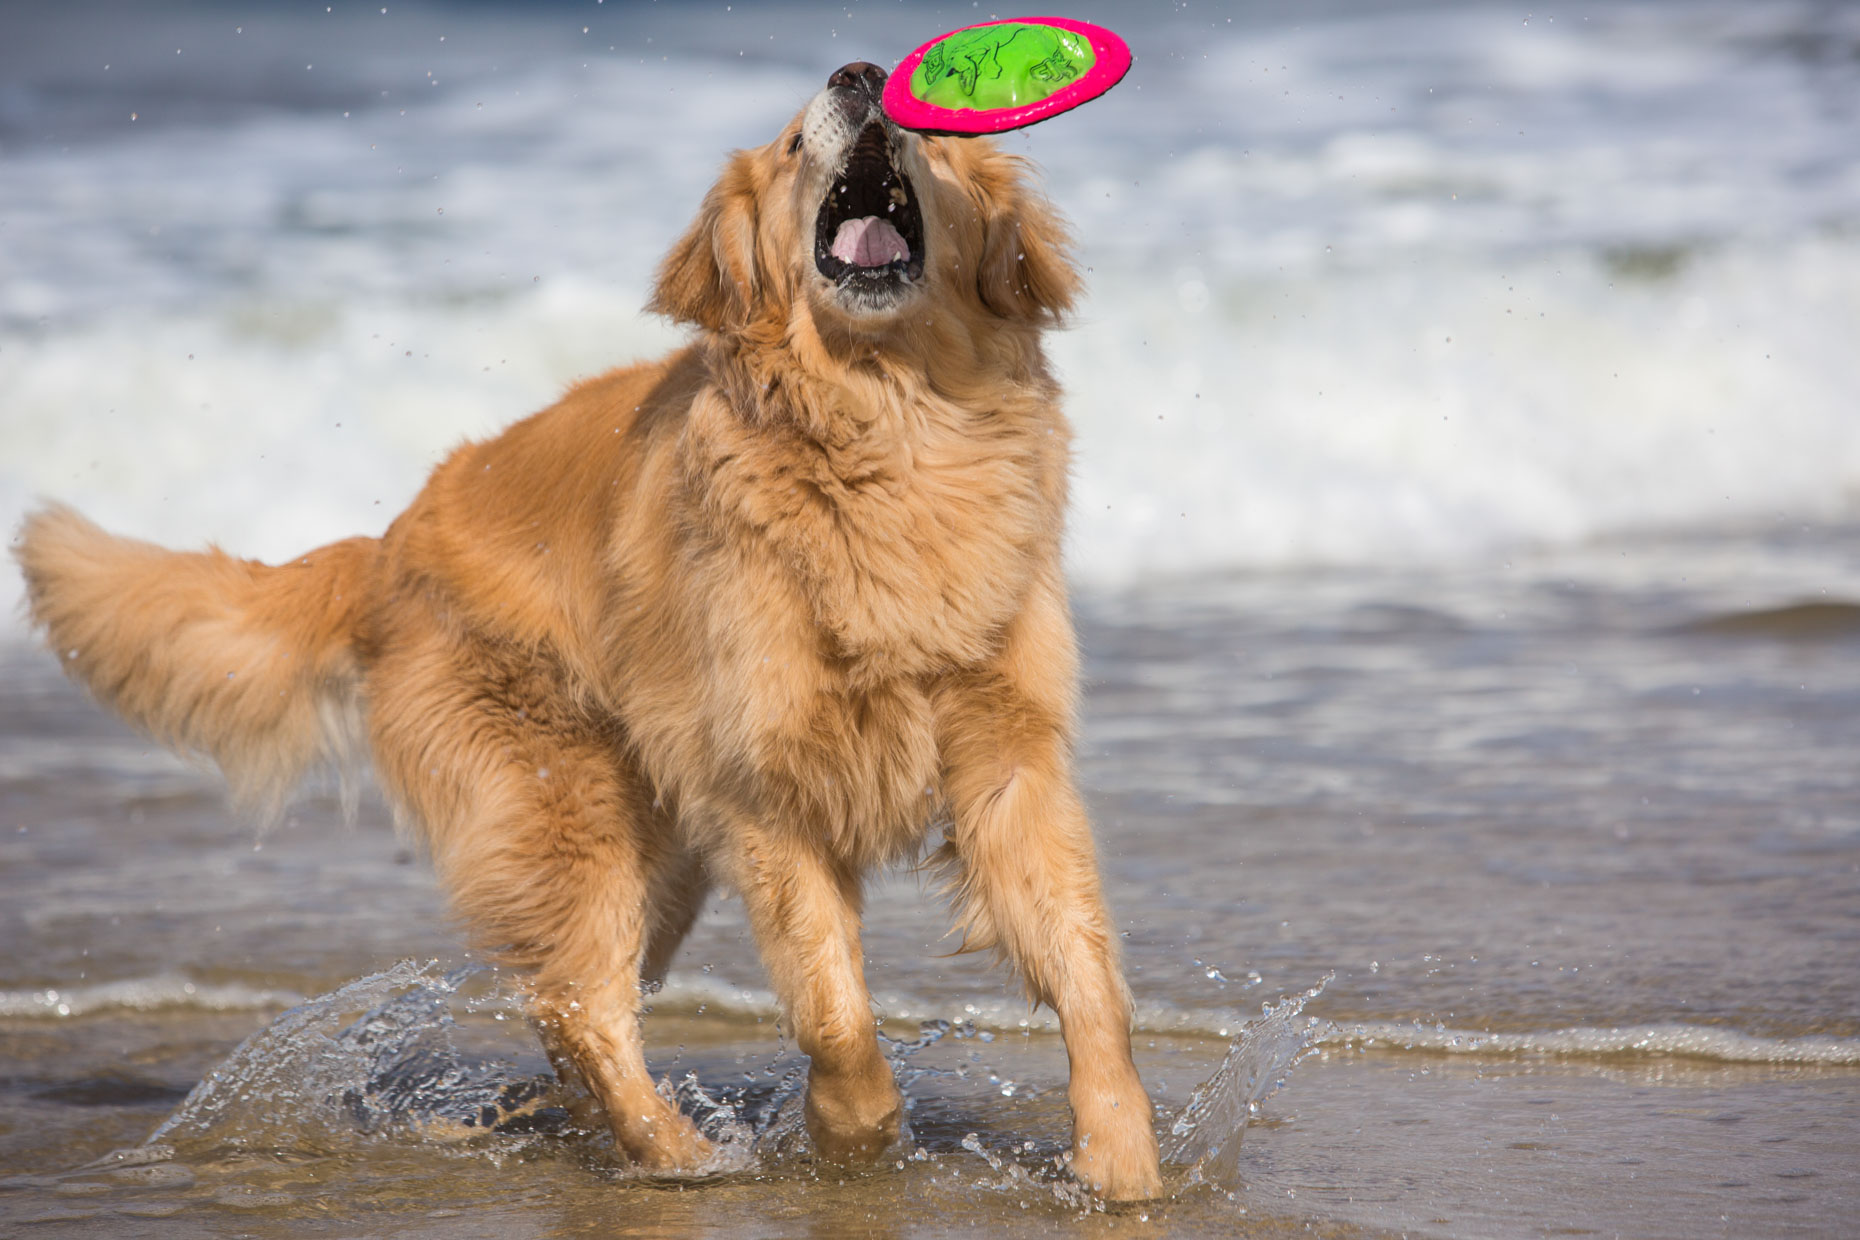 Dog Photography | Dog Catching Frisbee by Mark Rogers